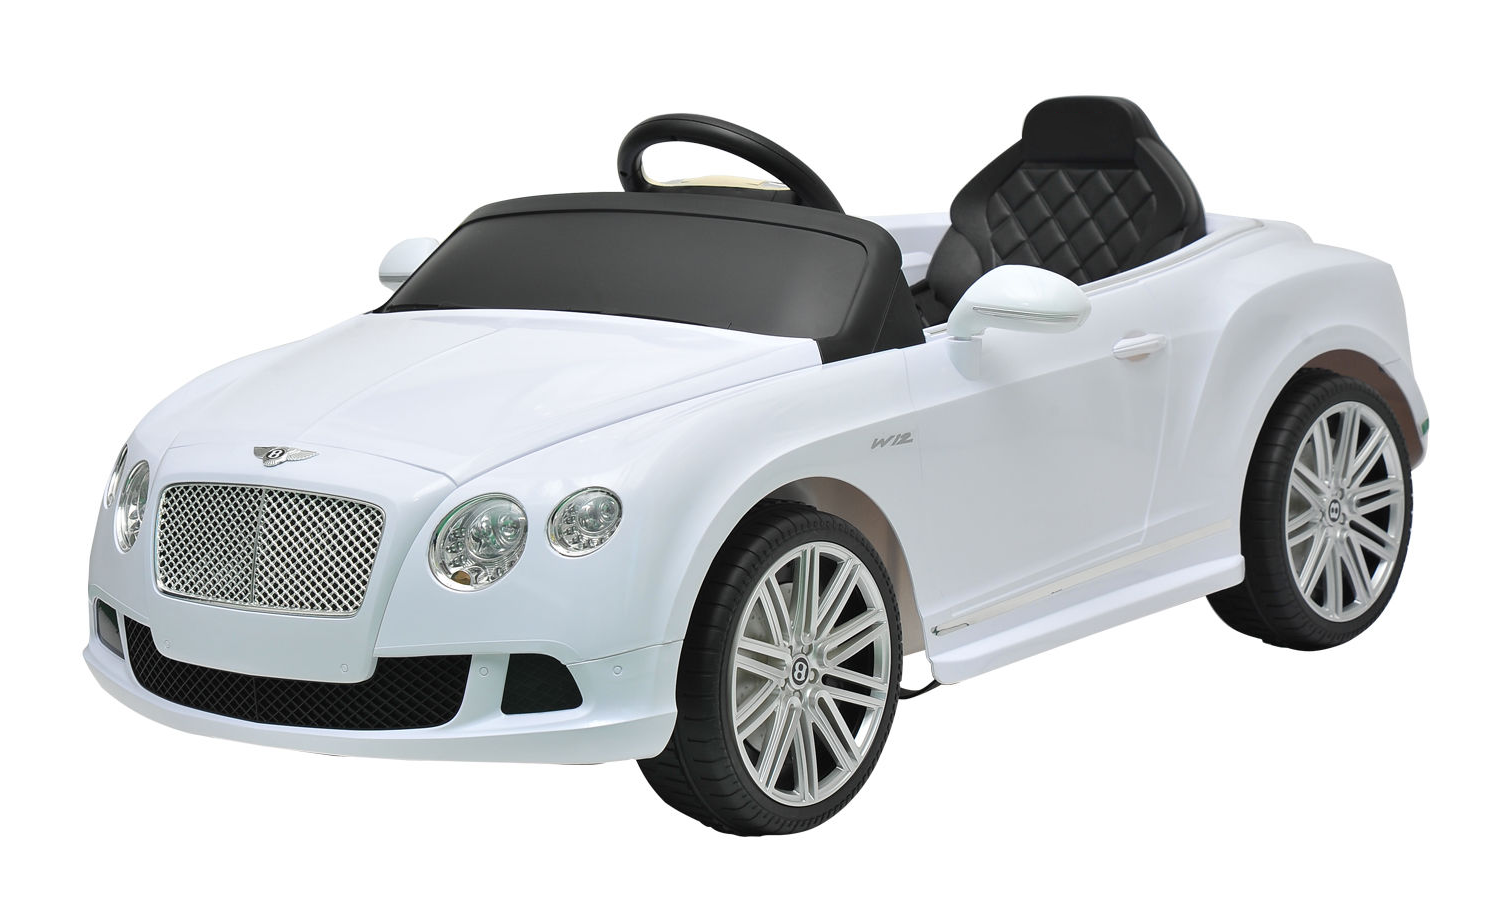 magic cars 12 volt electric bentley ride on rc battery powered car